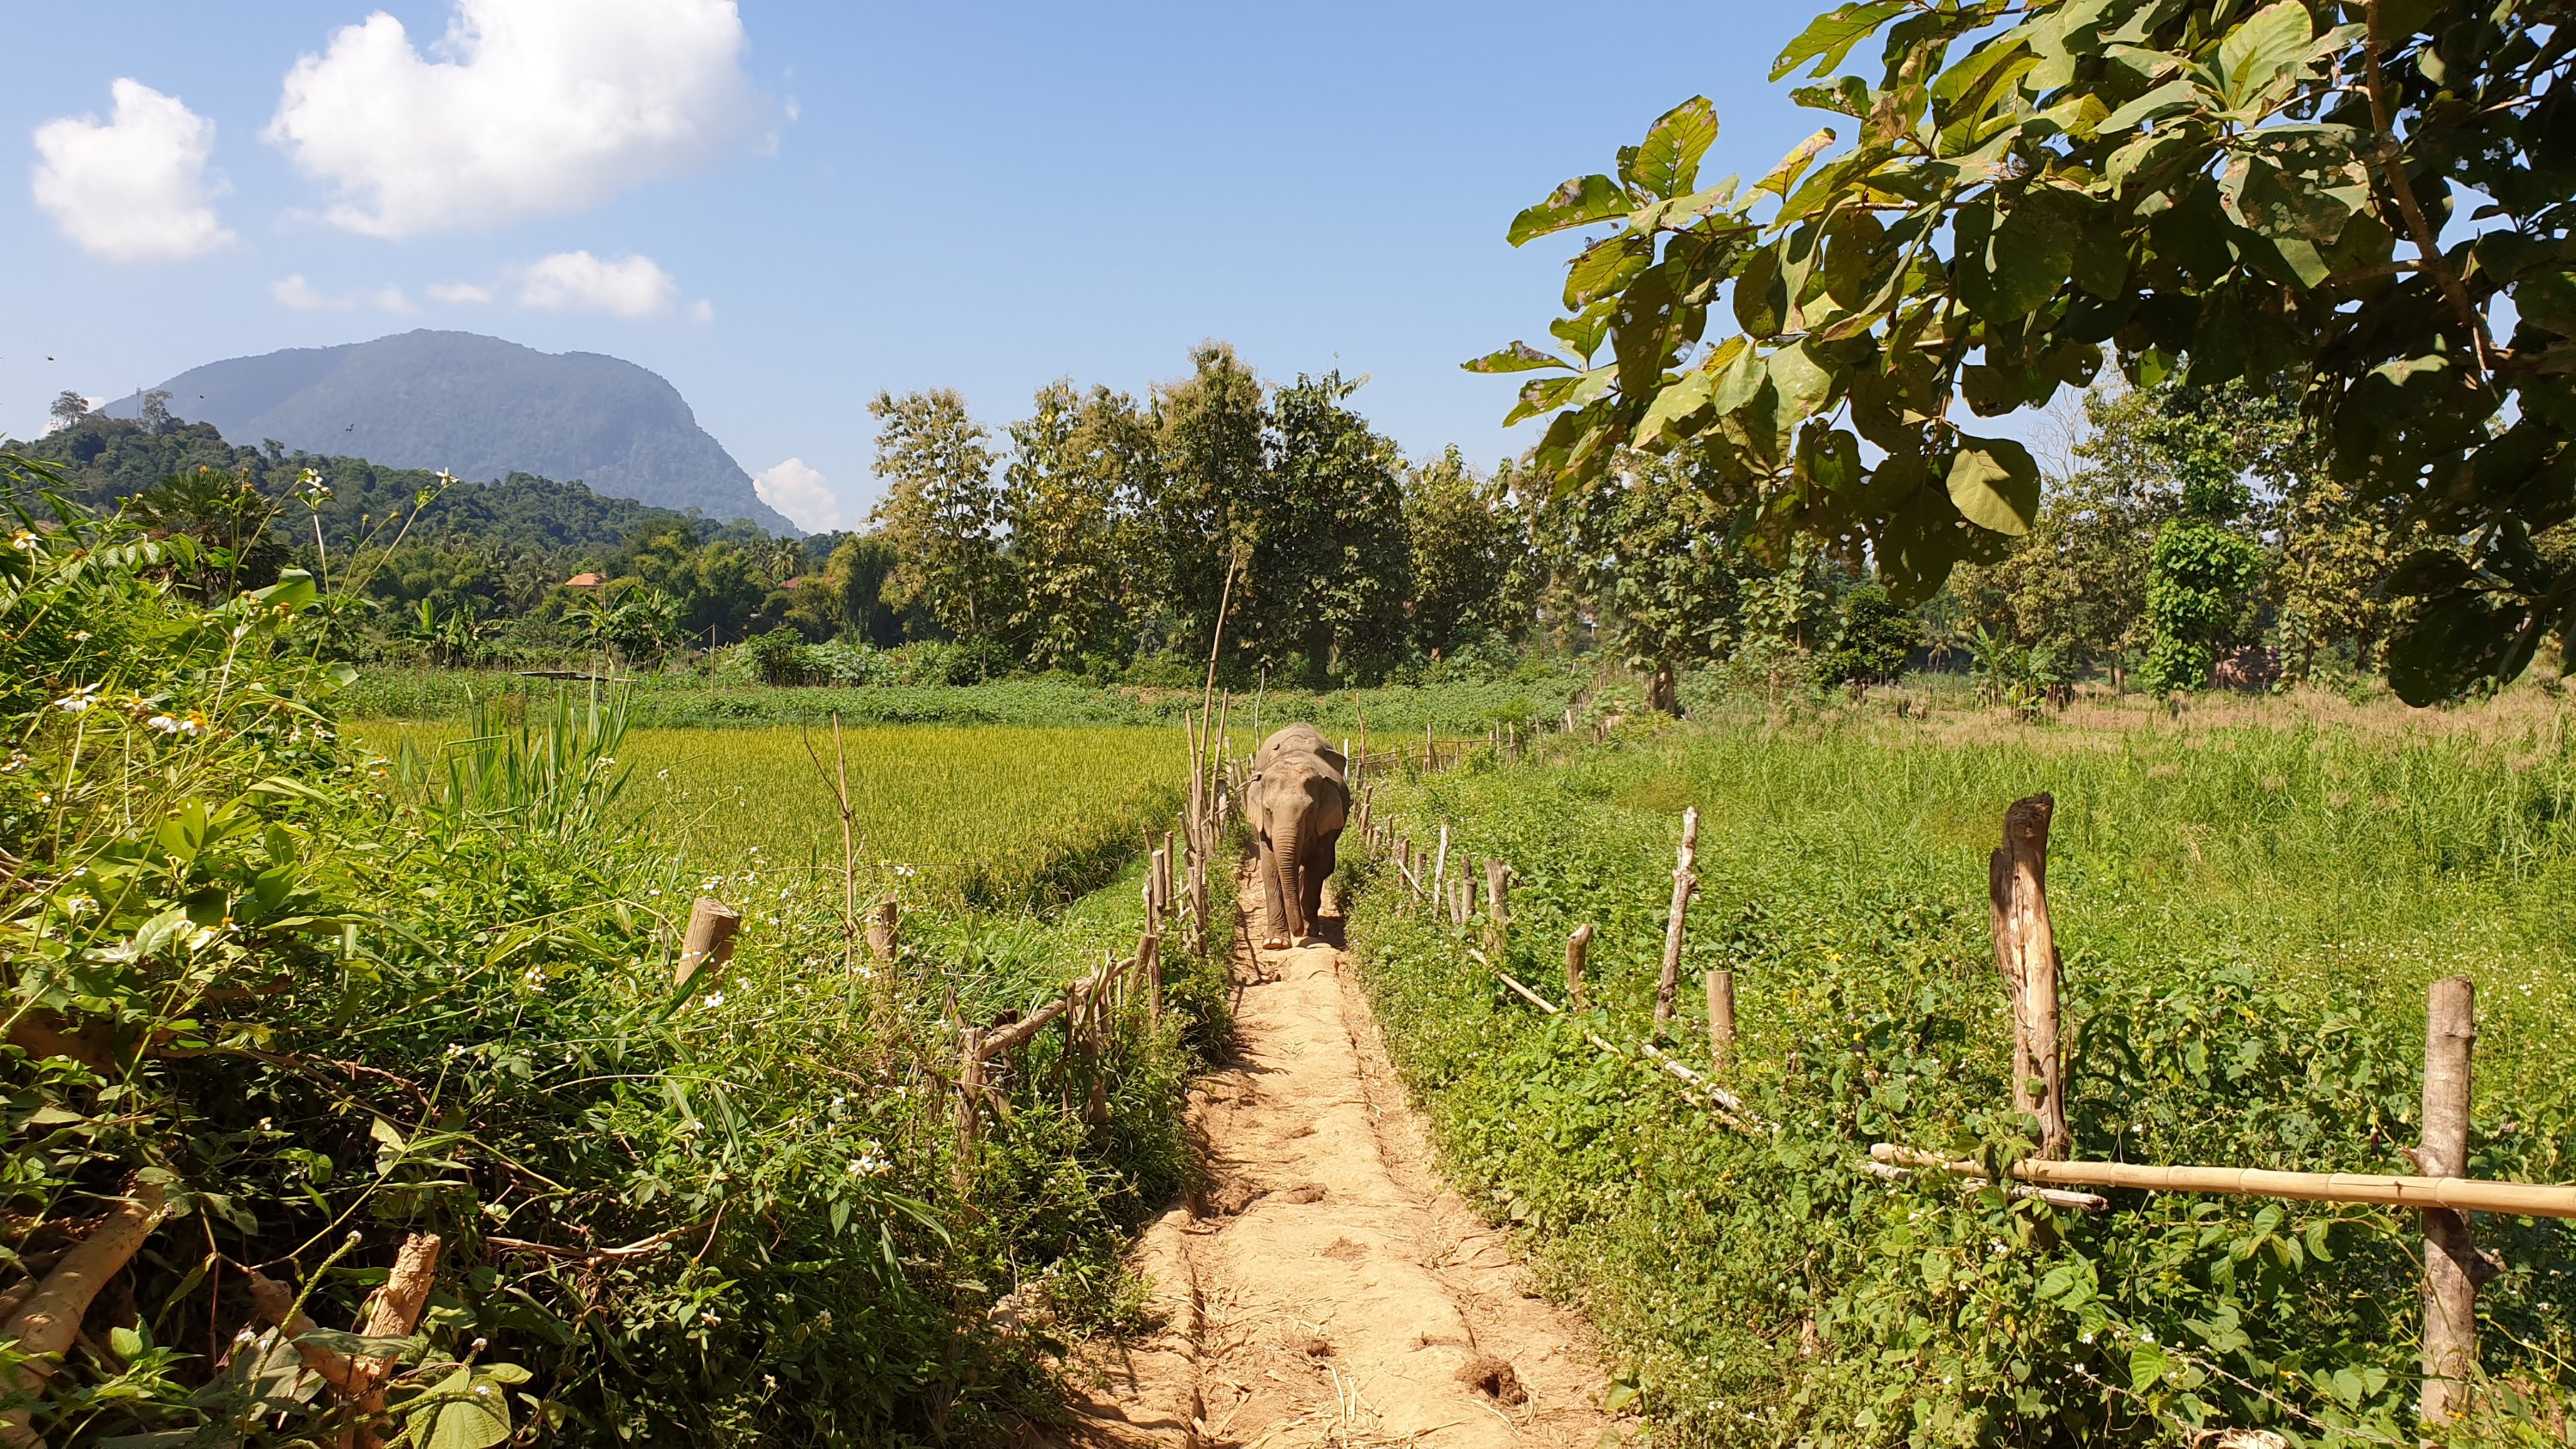 Elephants walking in Mandalao Elephant Sancturary with mountain in the background